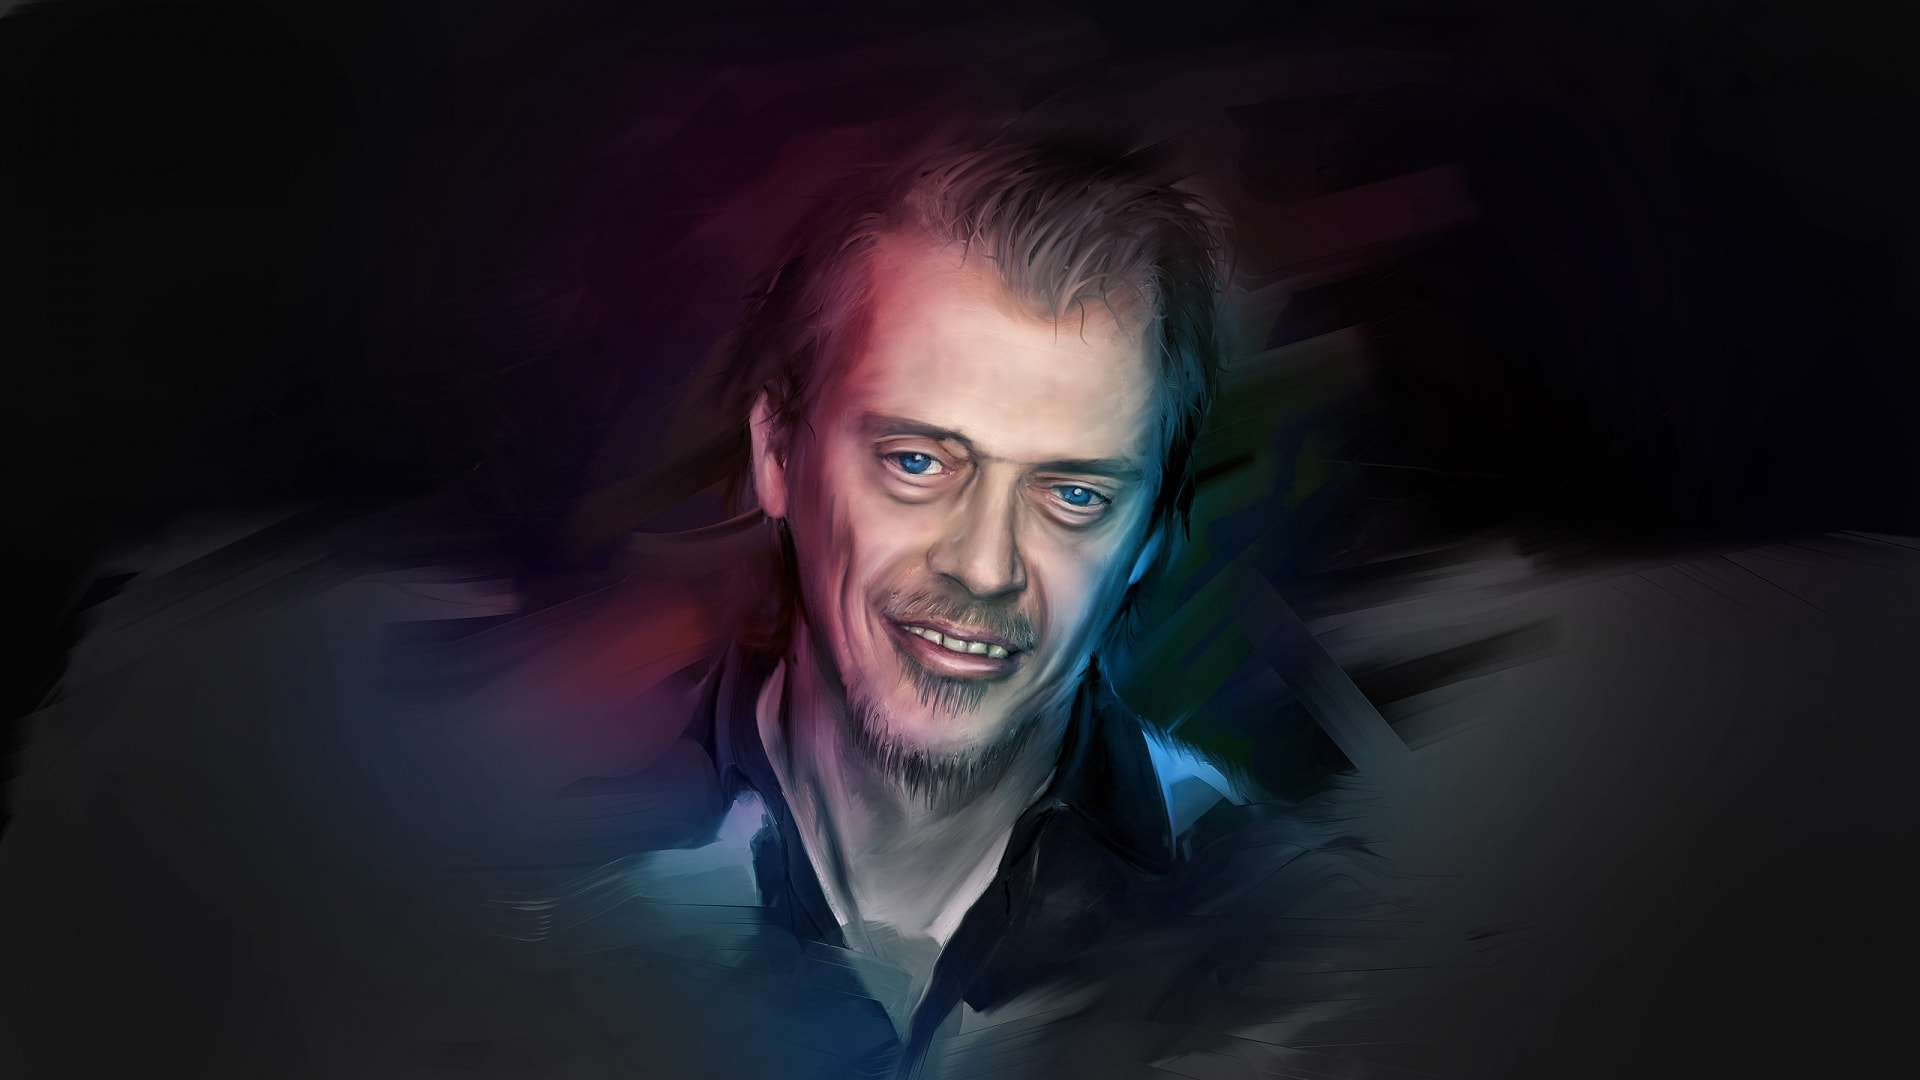 Steve Buscemi HD Wallpapers 7wallpapersnet 1920x1080